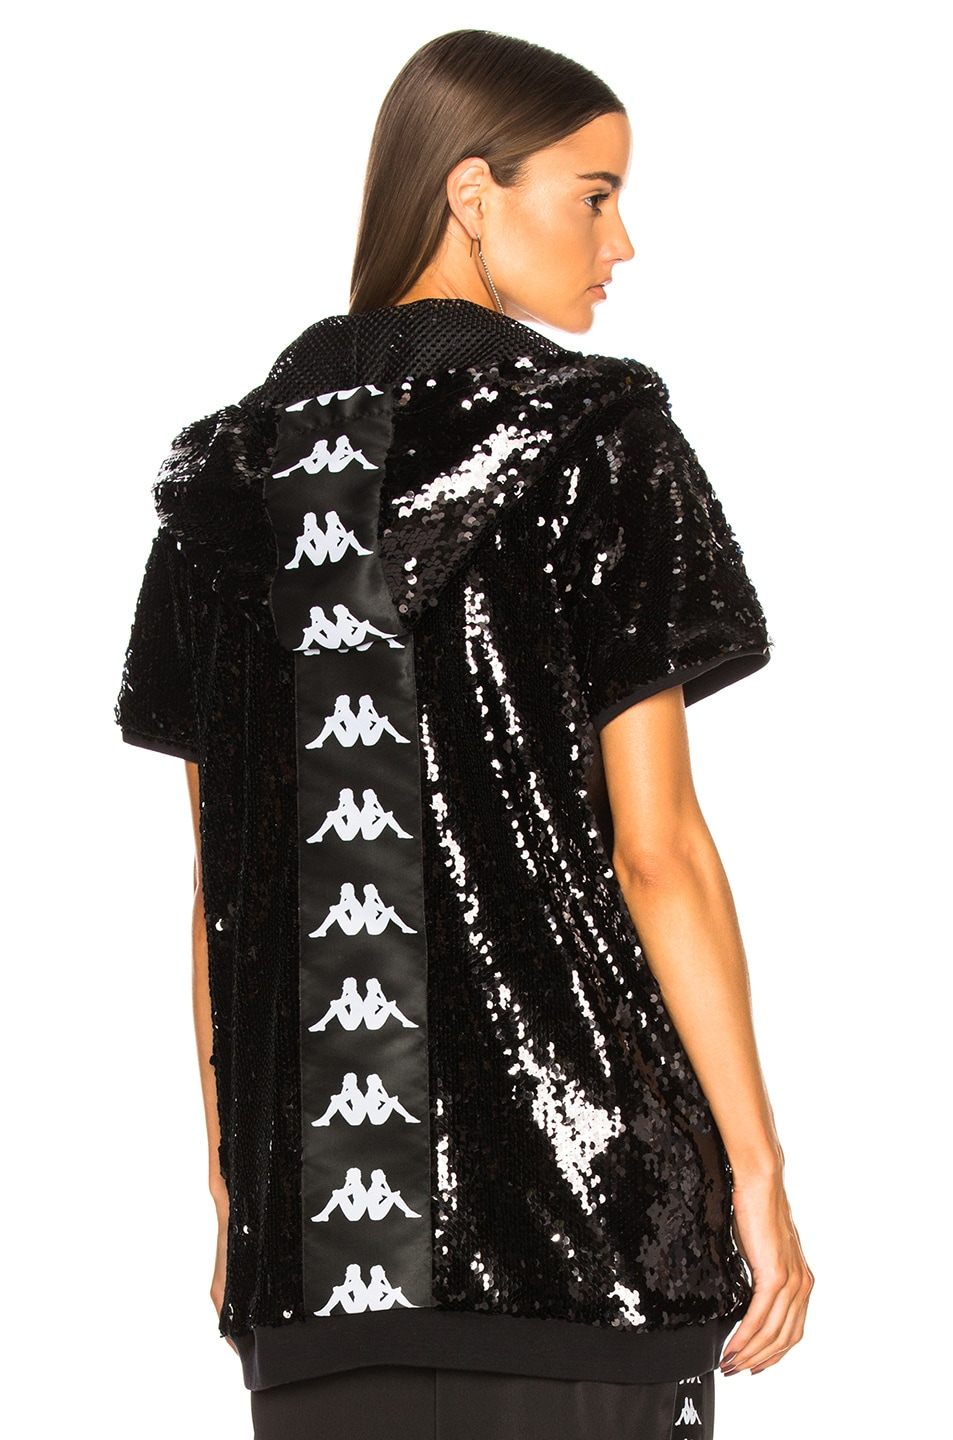 661ef3f9e49 Image 1 of Faith Connexion Kappa Sequin Hooded Sweater in Black